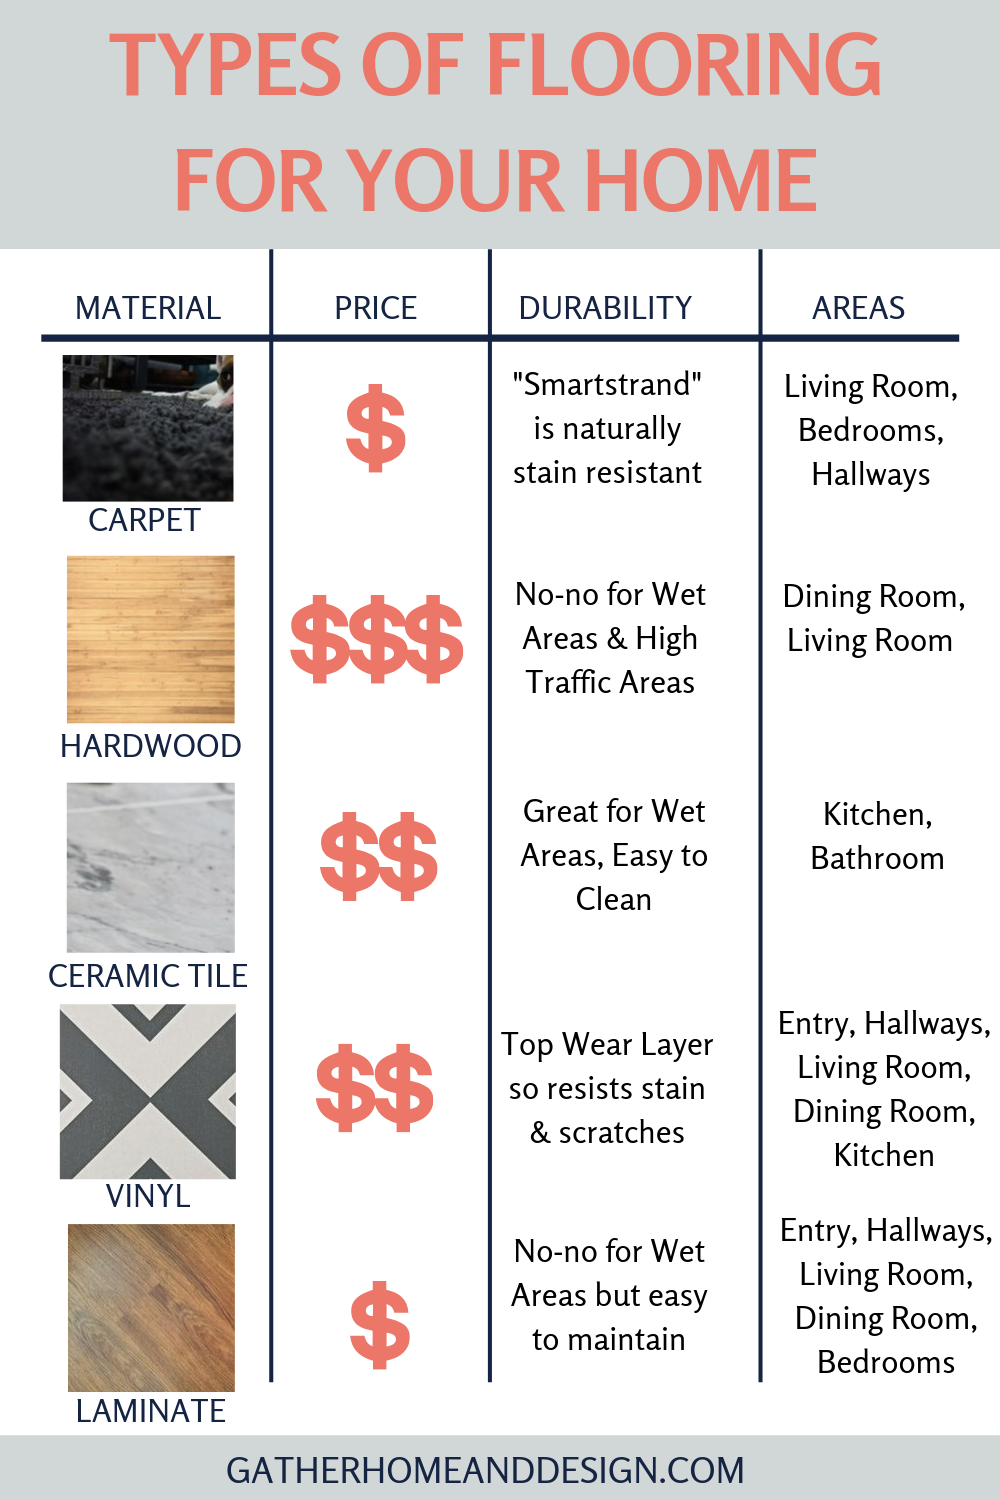 How to Pick the Best Type of Flooring for Your New Home